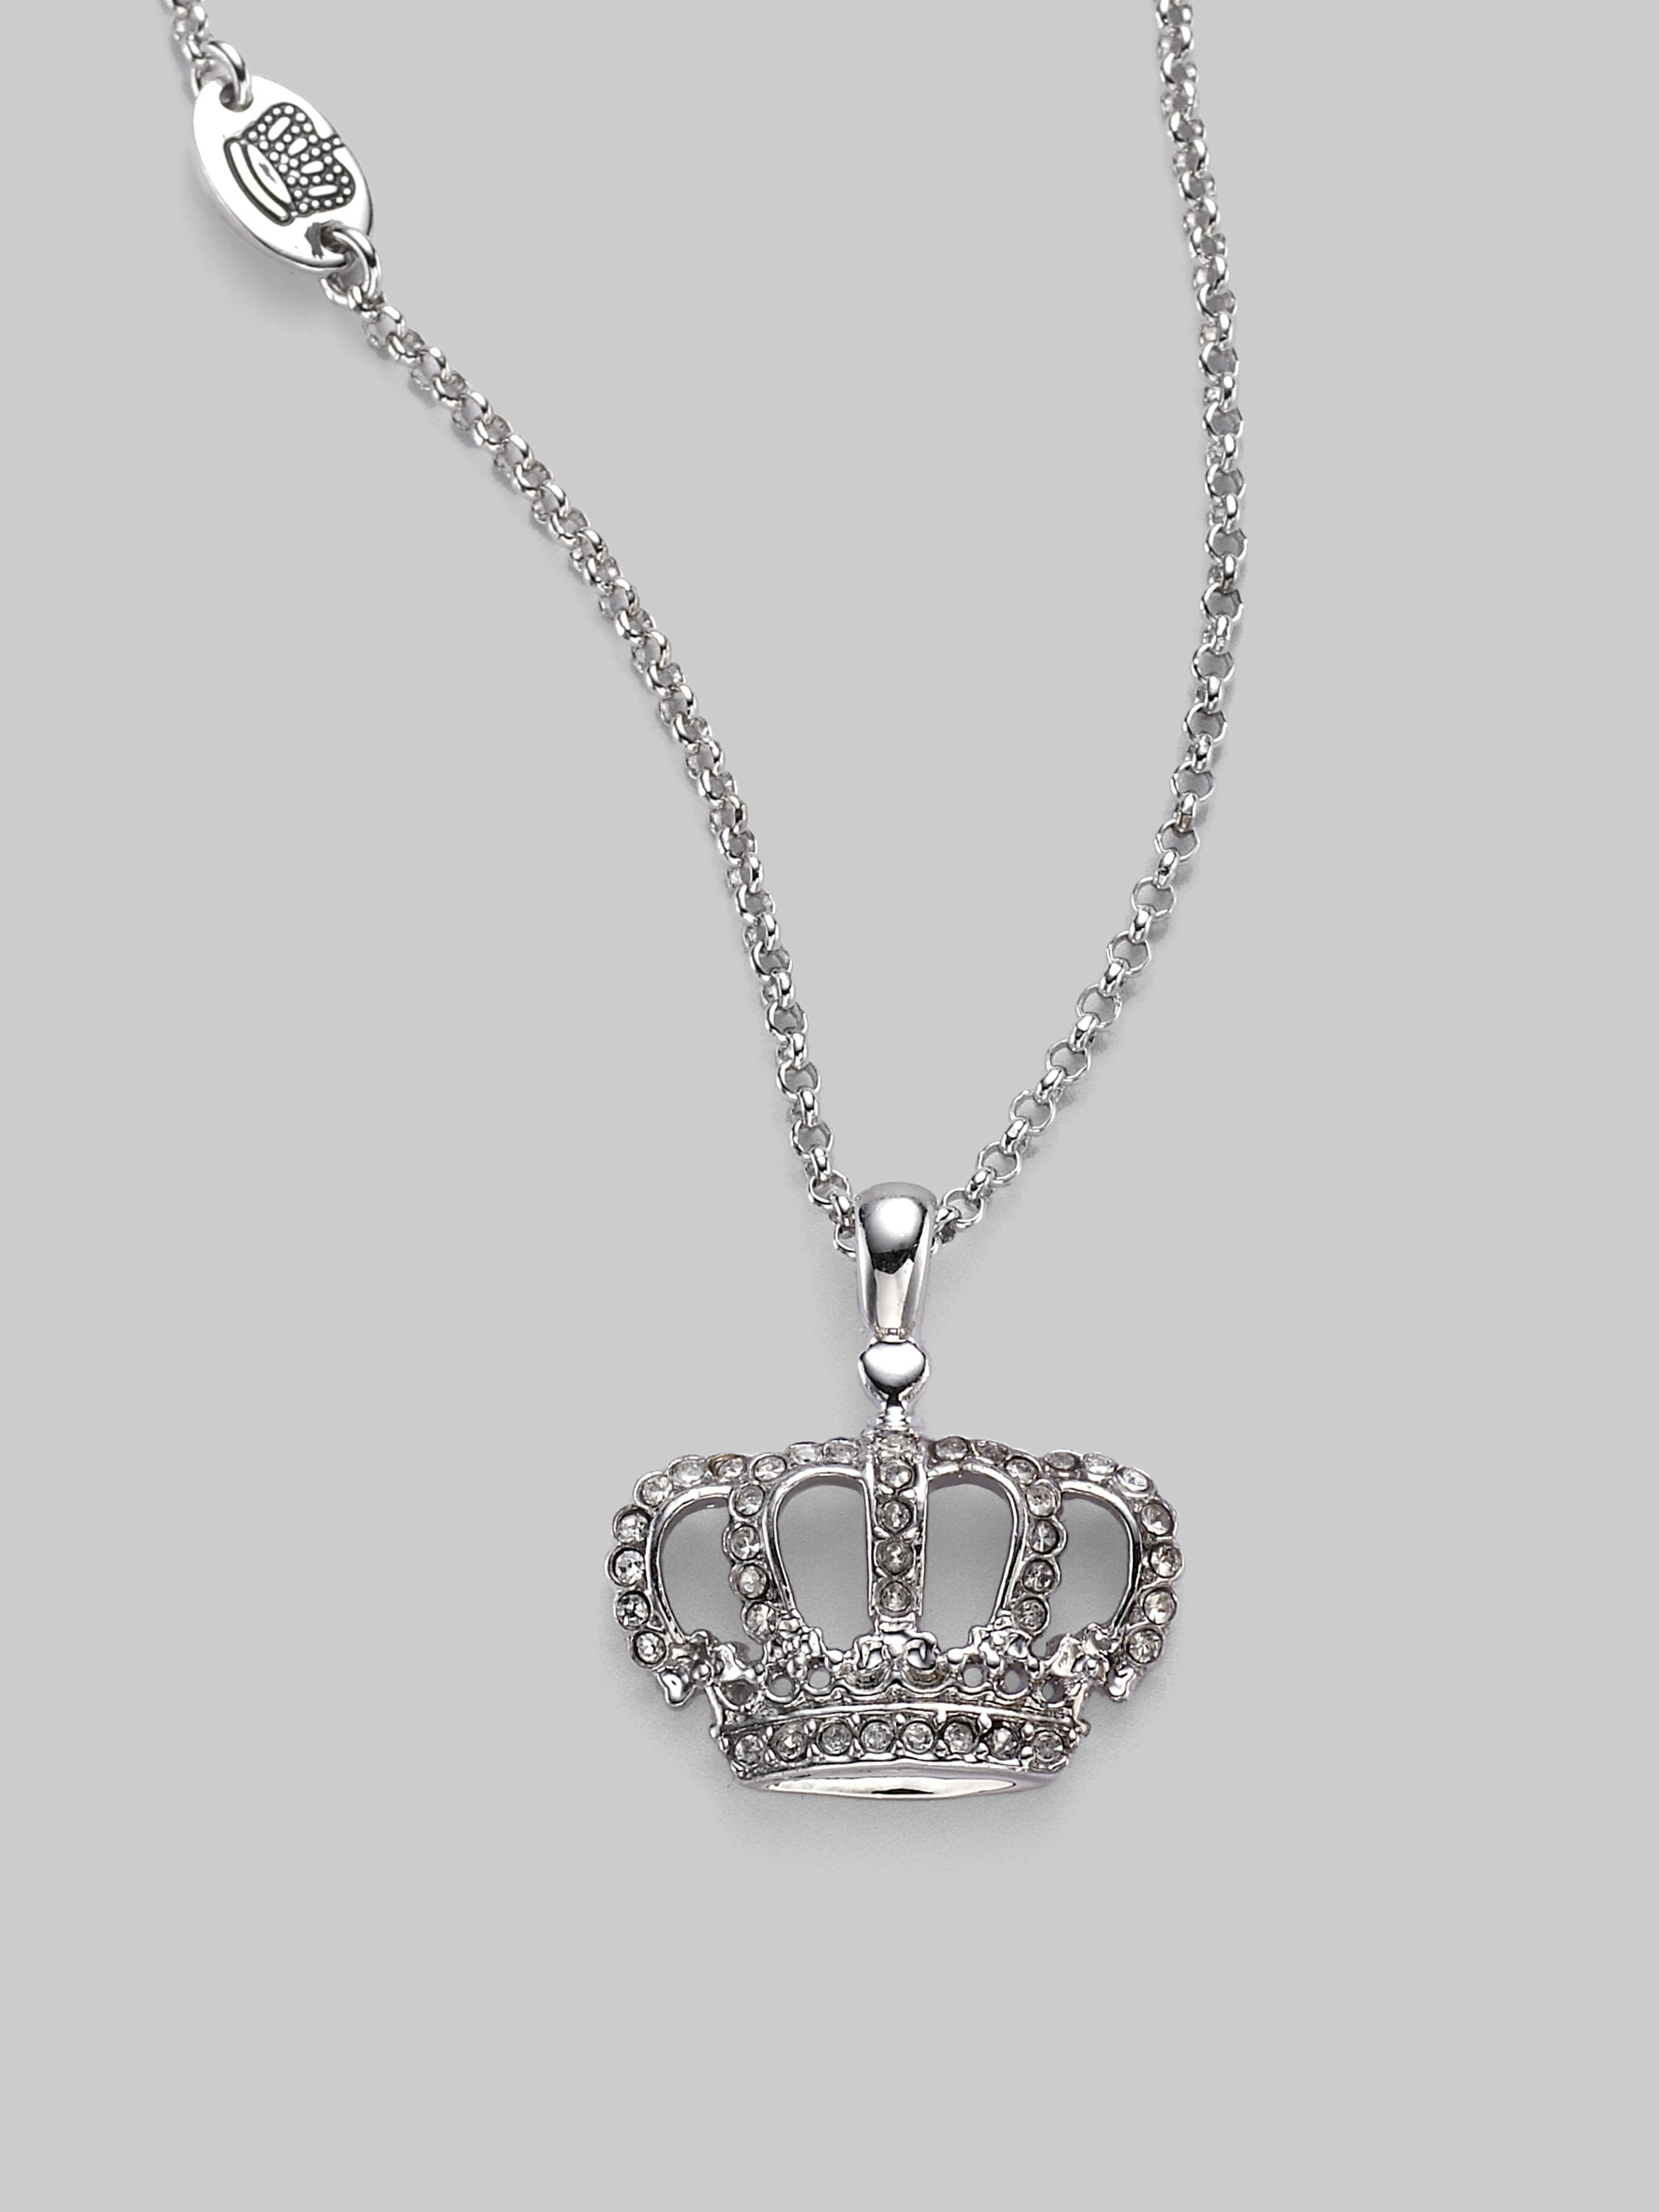 iced king necklace kings s co crown if diamond yellow royal piece fully nano products